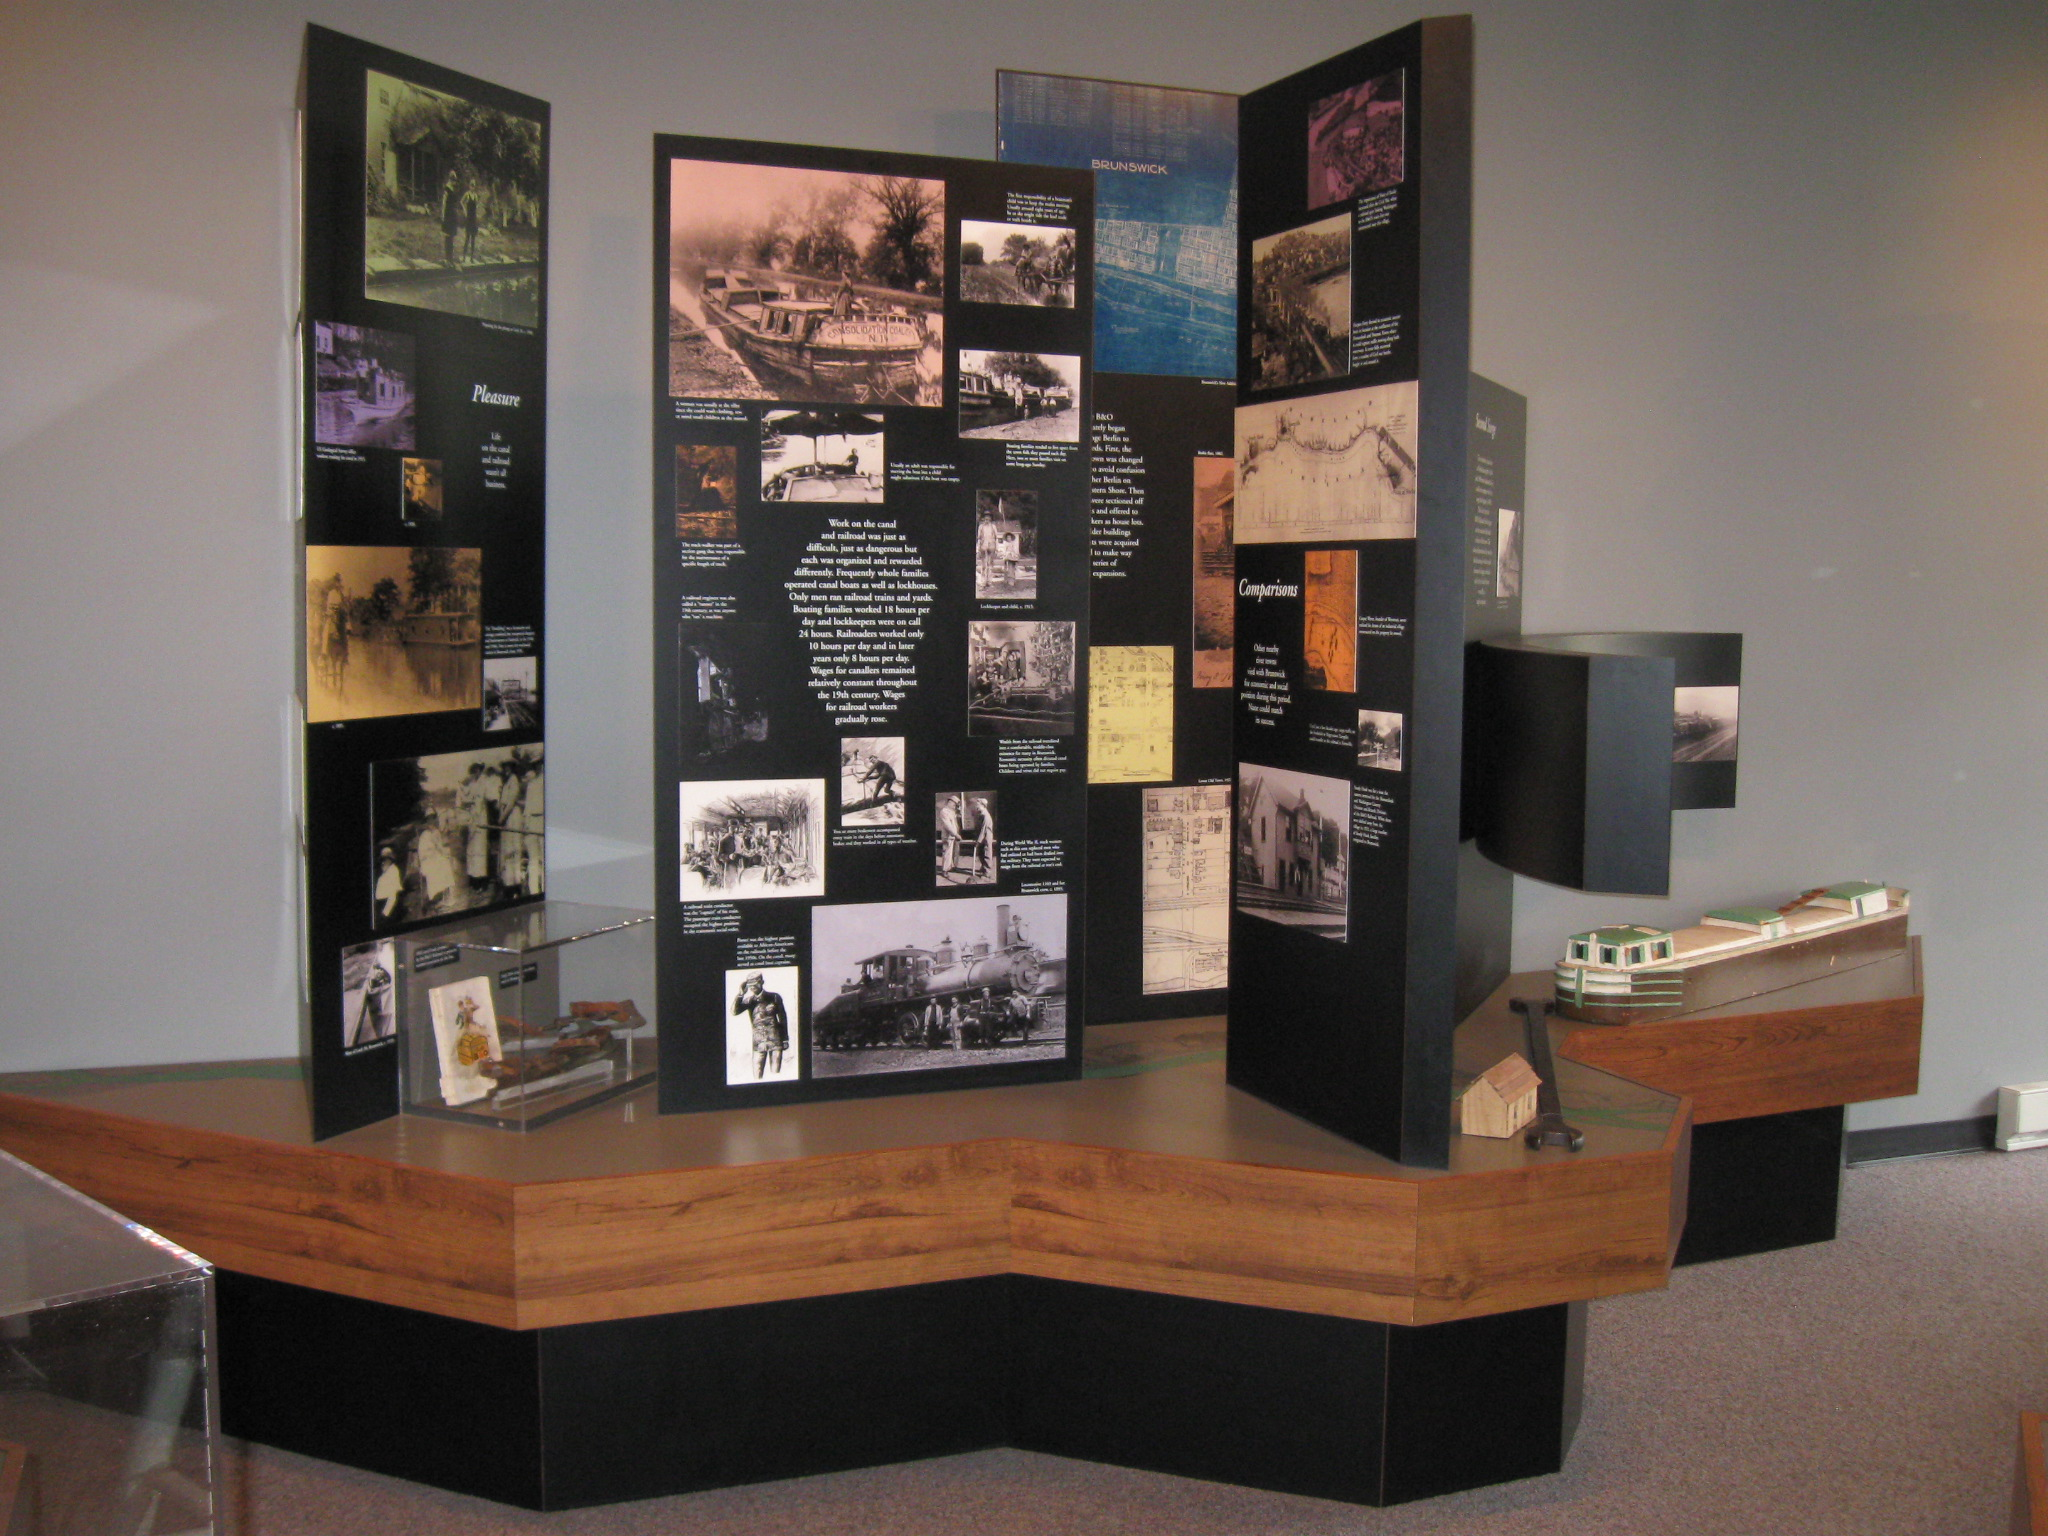 Exhibits in the Brunswick Visitor Center